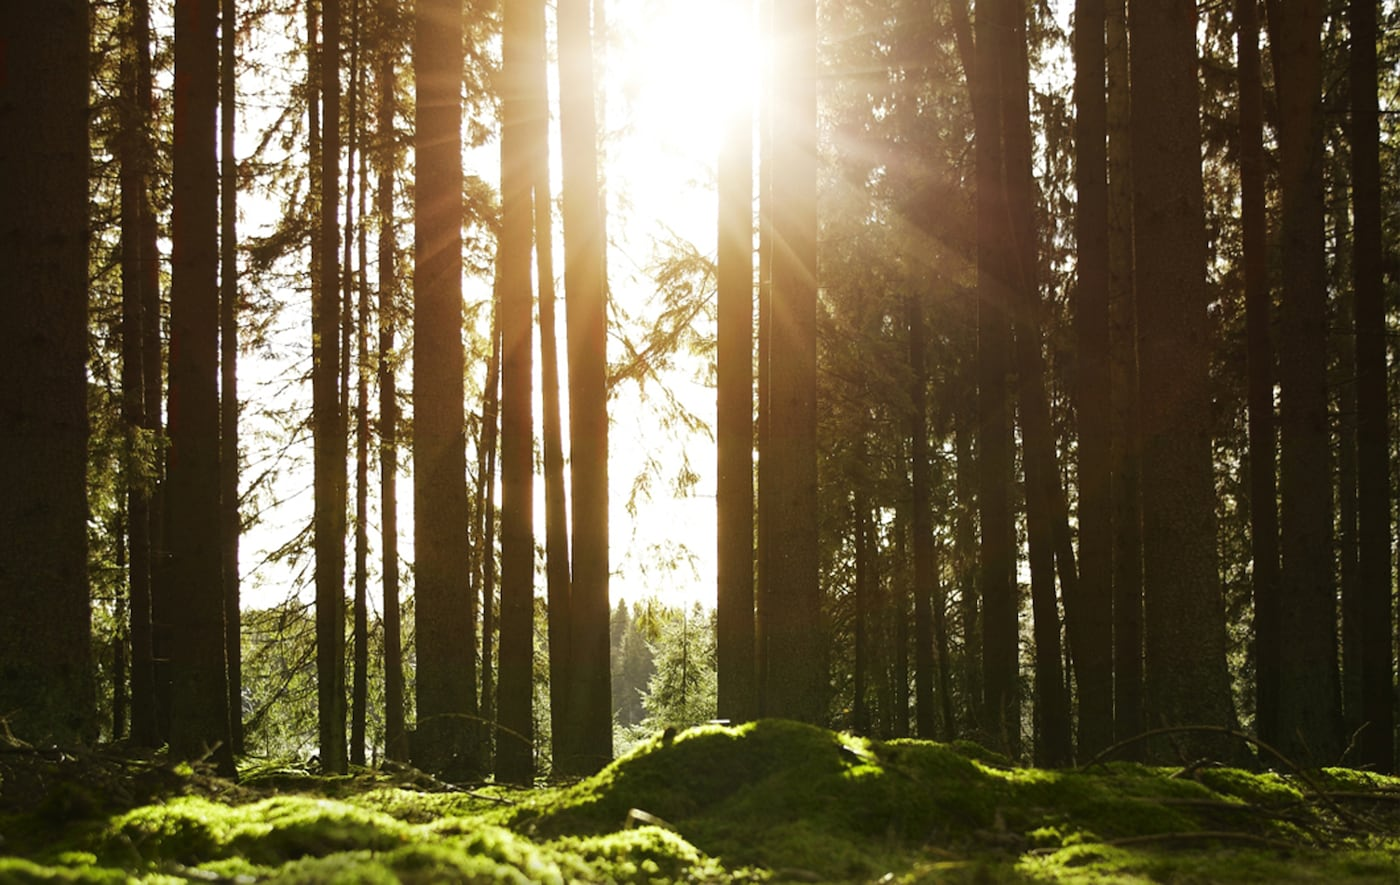 Sunlight breaking through trees in a pine forest.